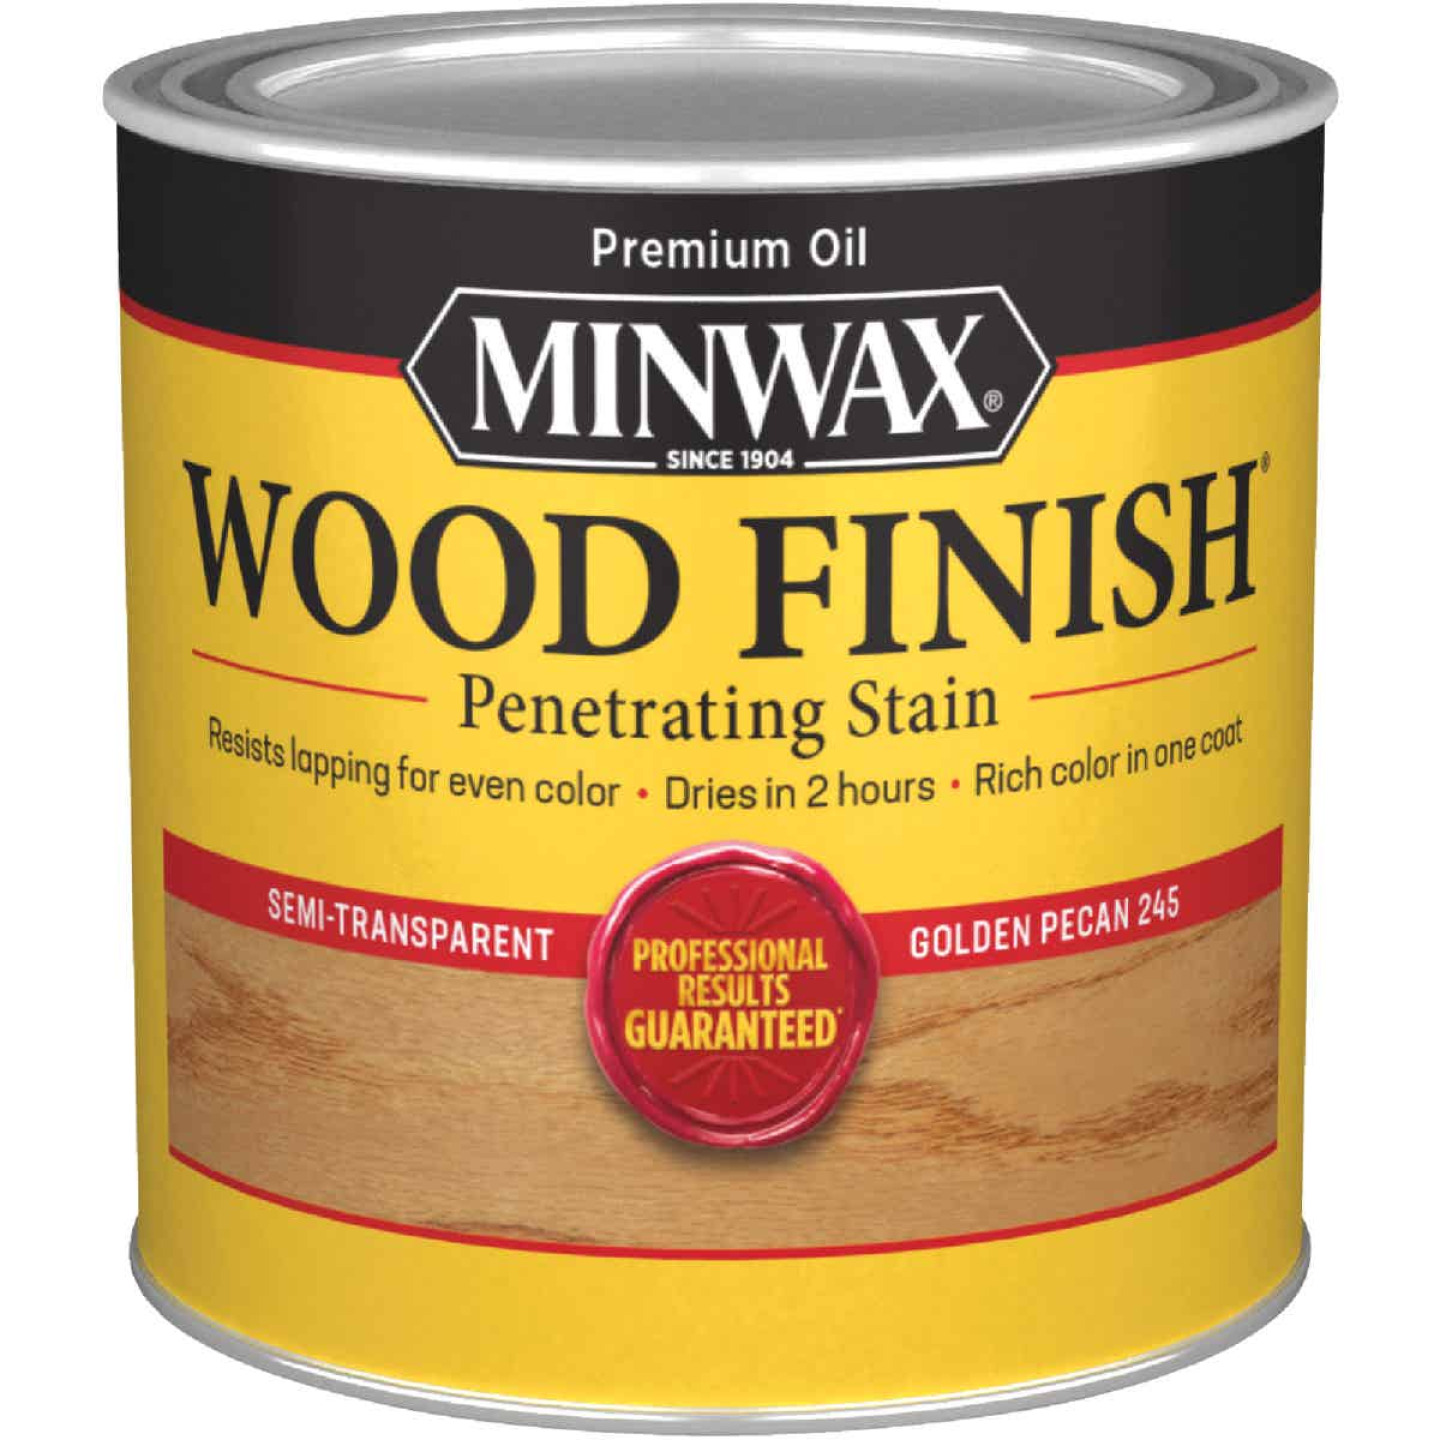 Minwax Wood Finish Penetrating Stain, Golden Pecan, 1/2 Pt. Image 1